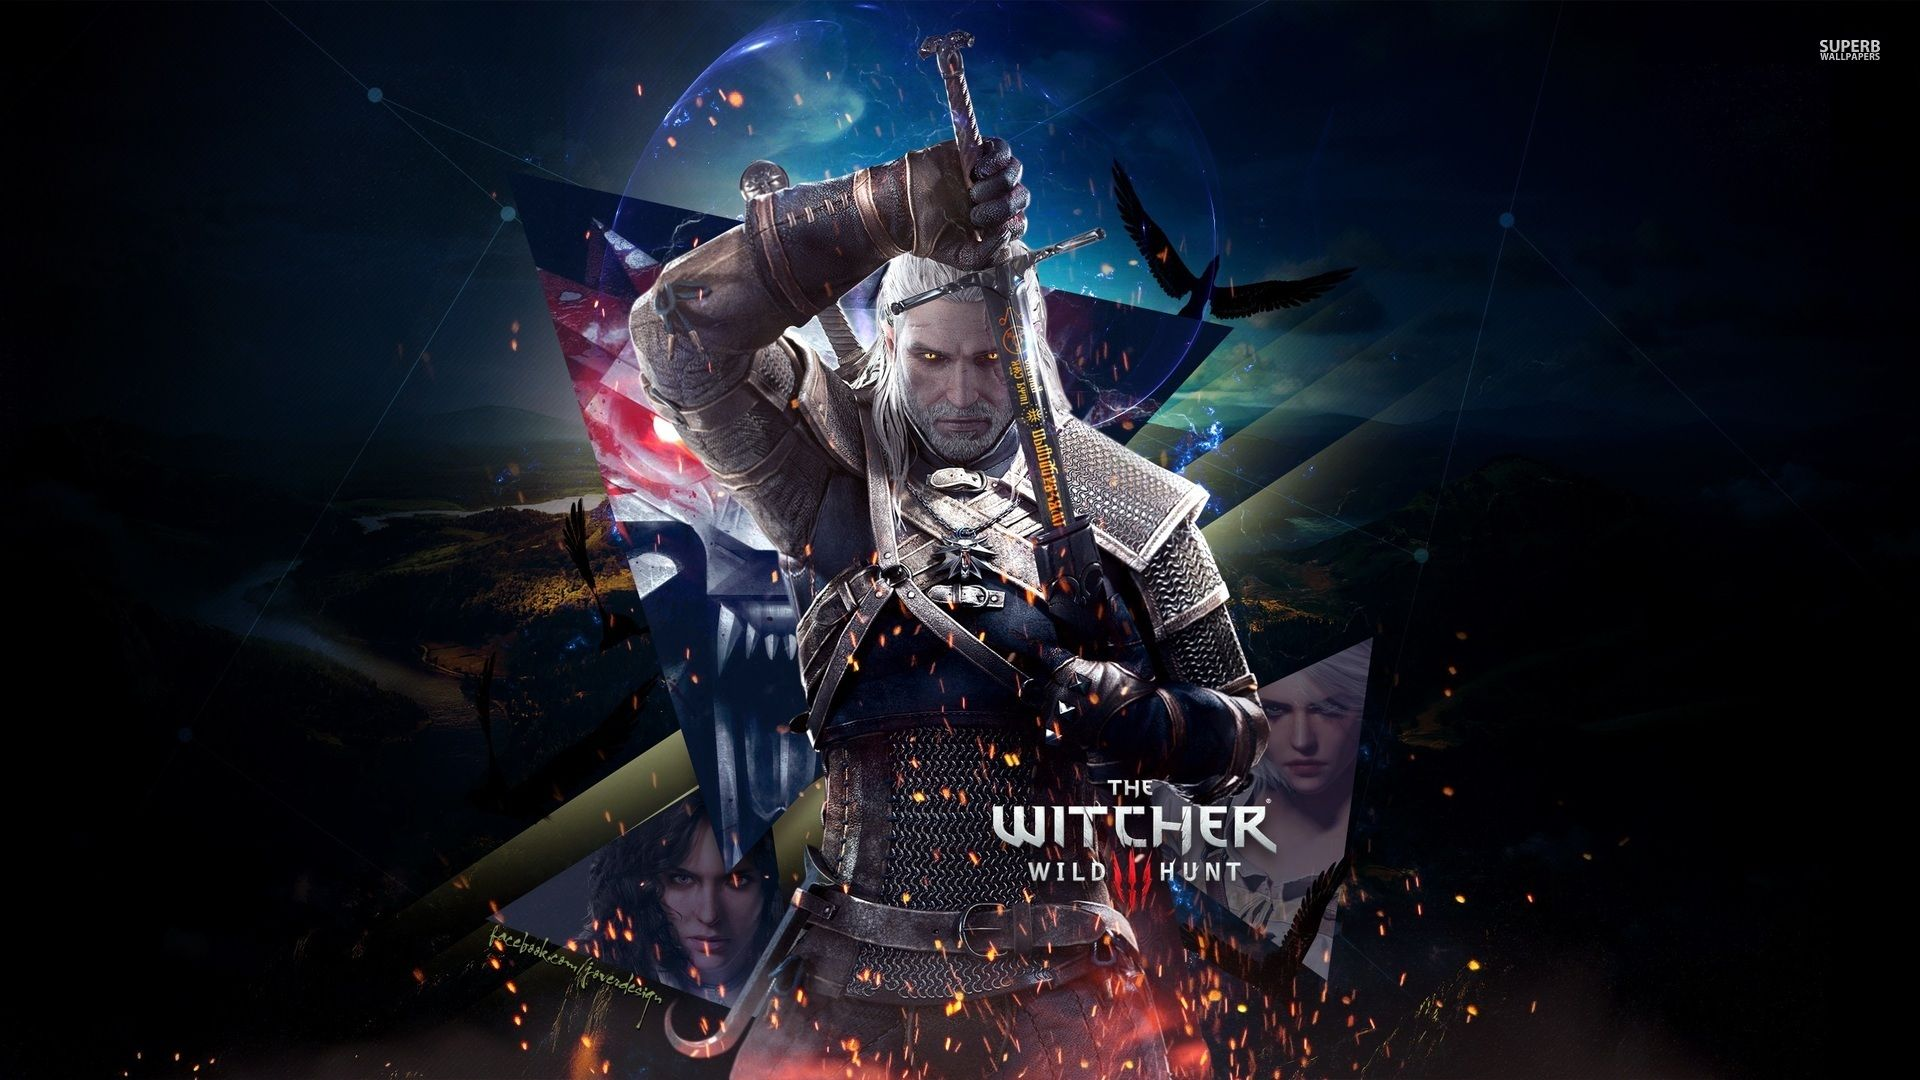 Witcher 3 Geralt Wallpaper Posted By Sarah Sellers